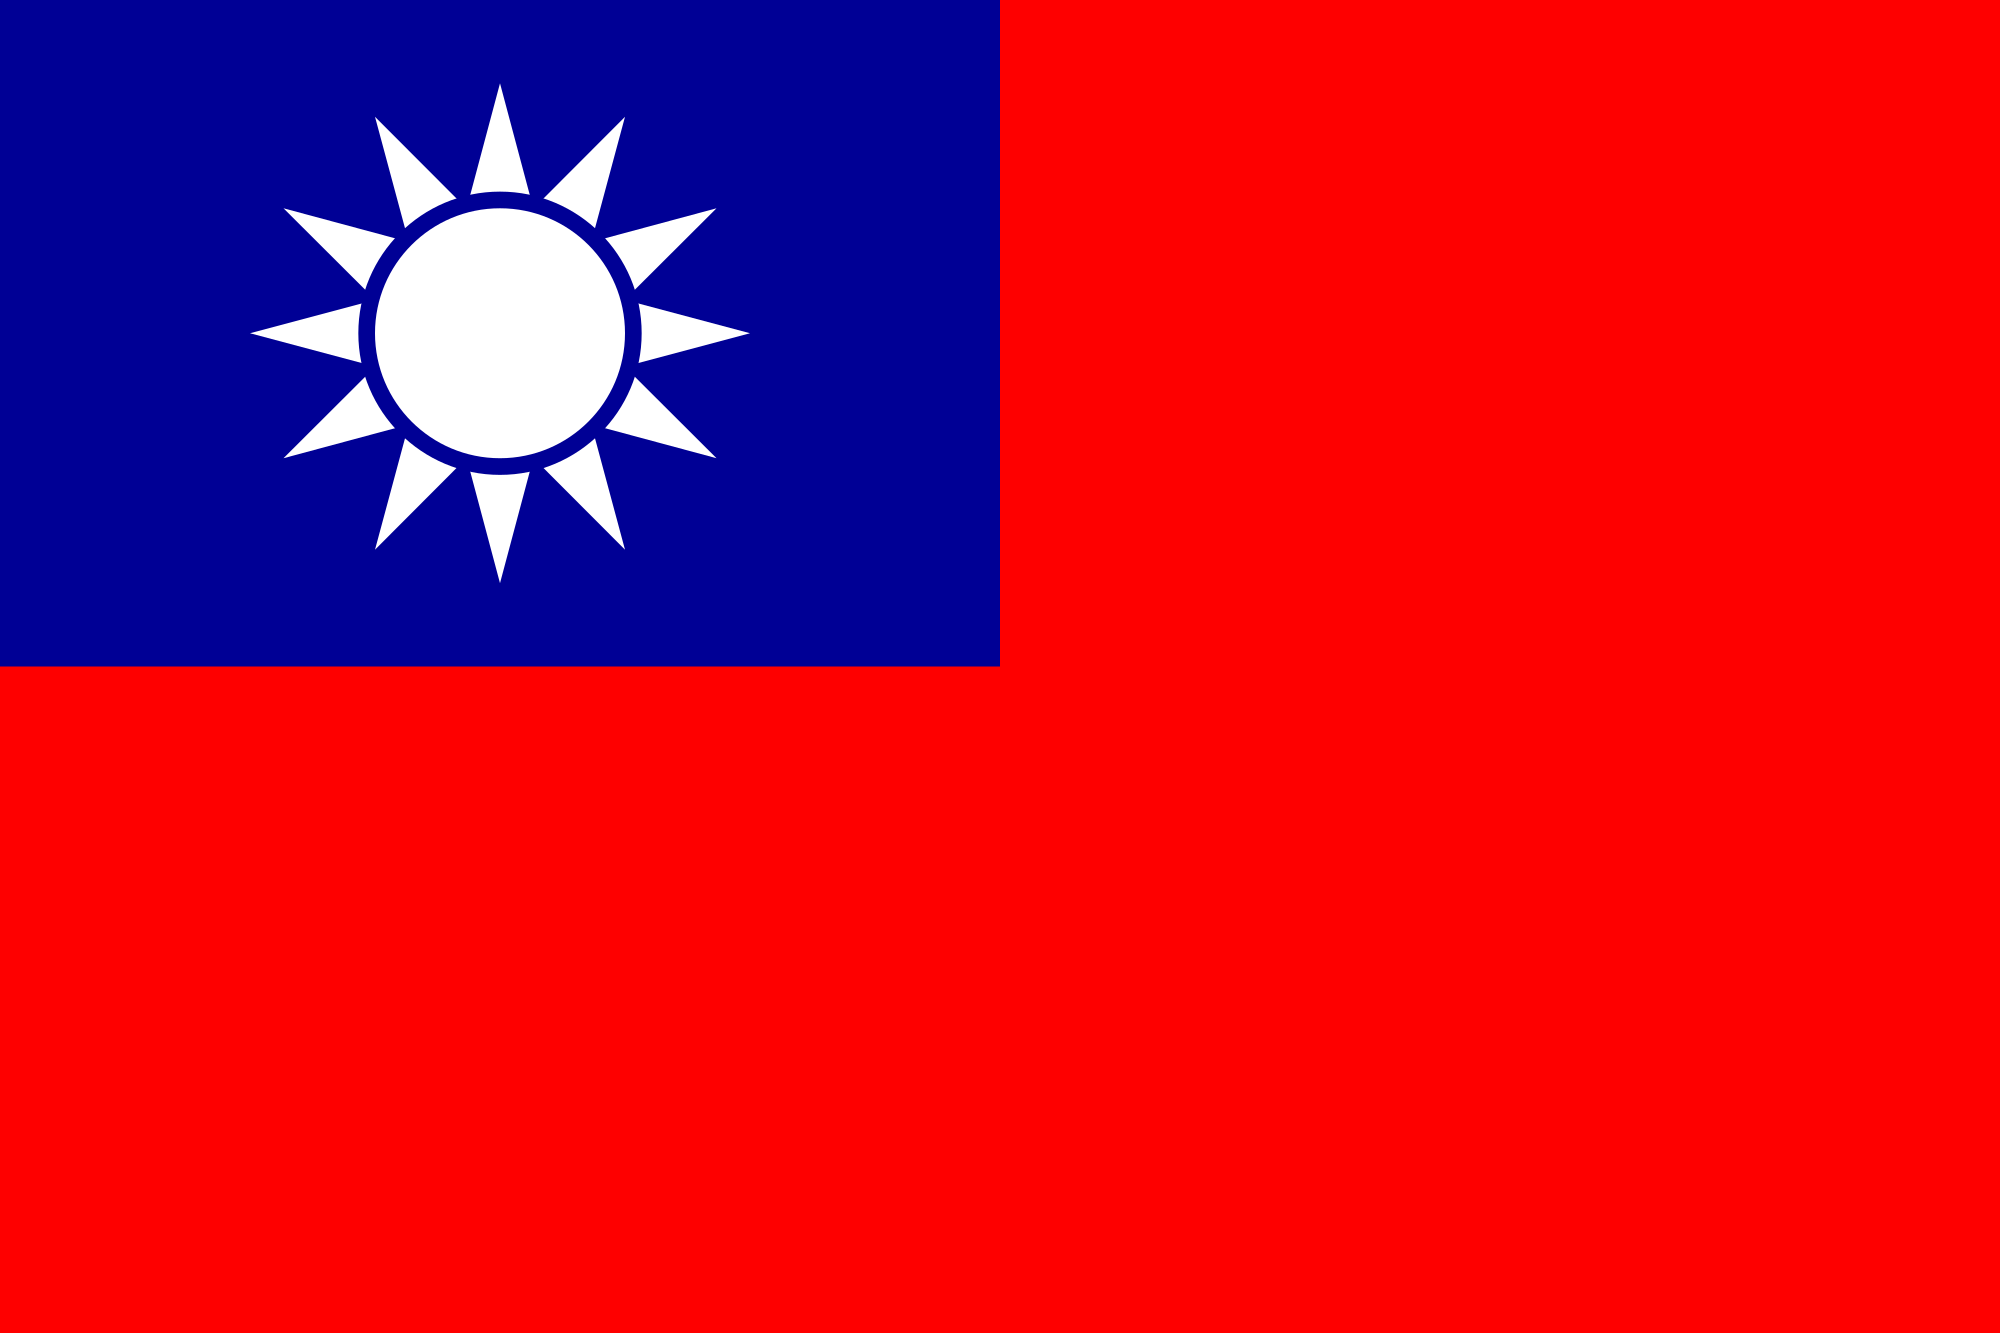 Conference in Taiwan ,Events in Taiwan 2020-2021 ,Event in Taiwan